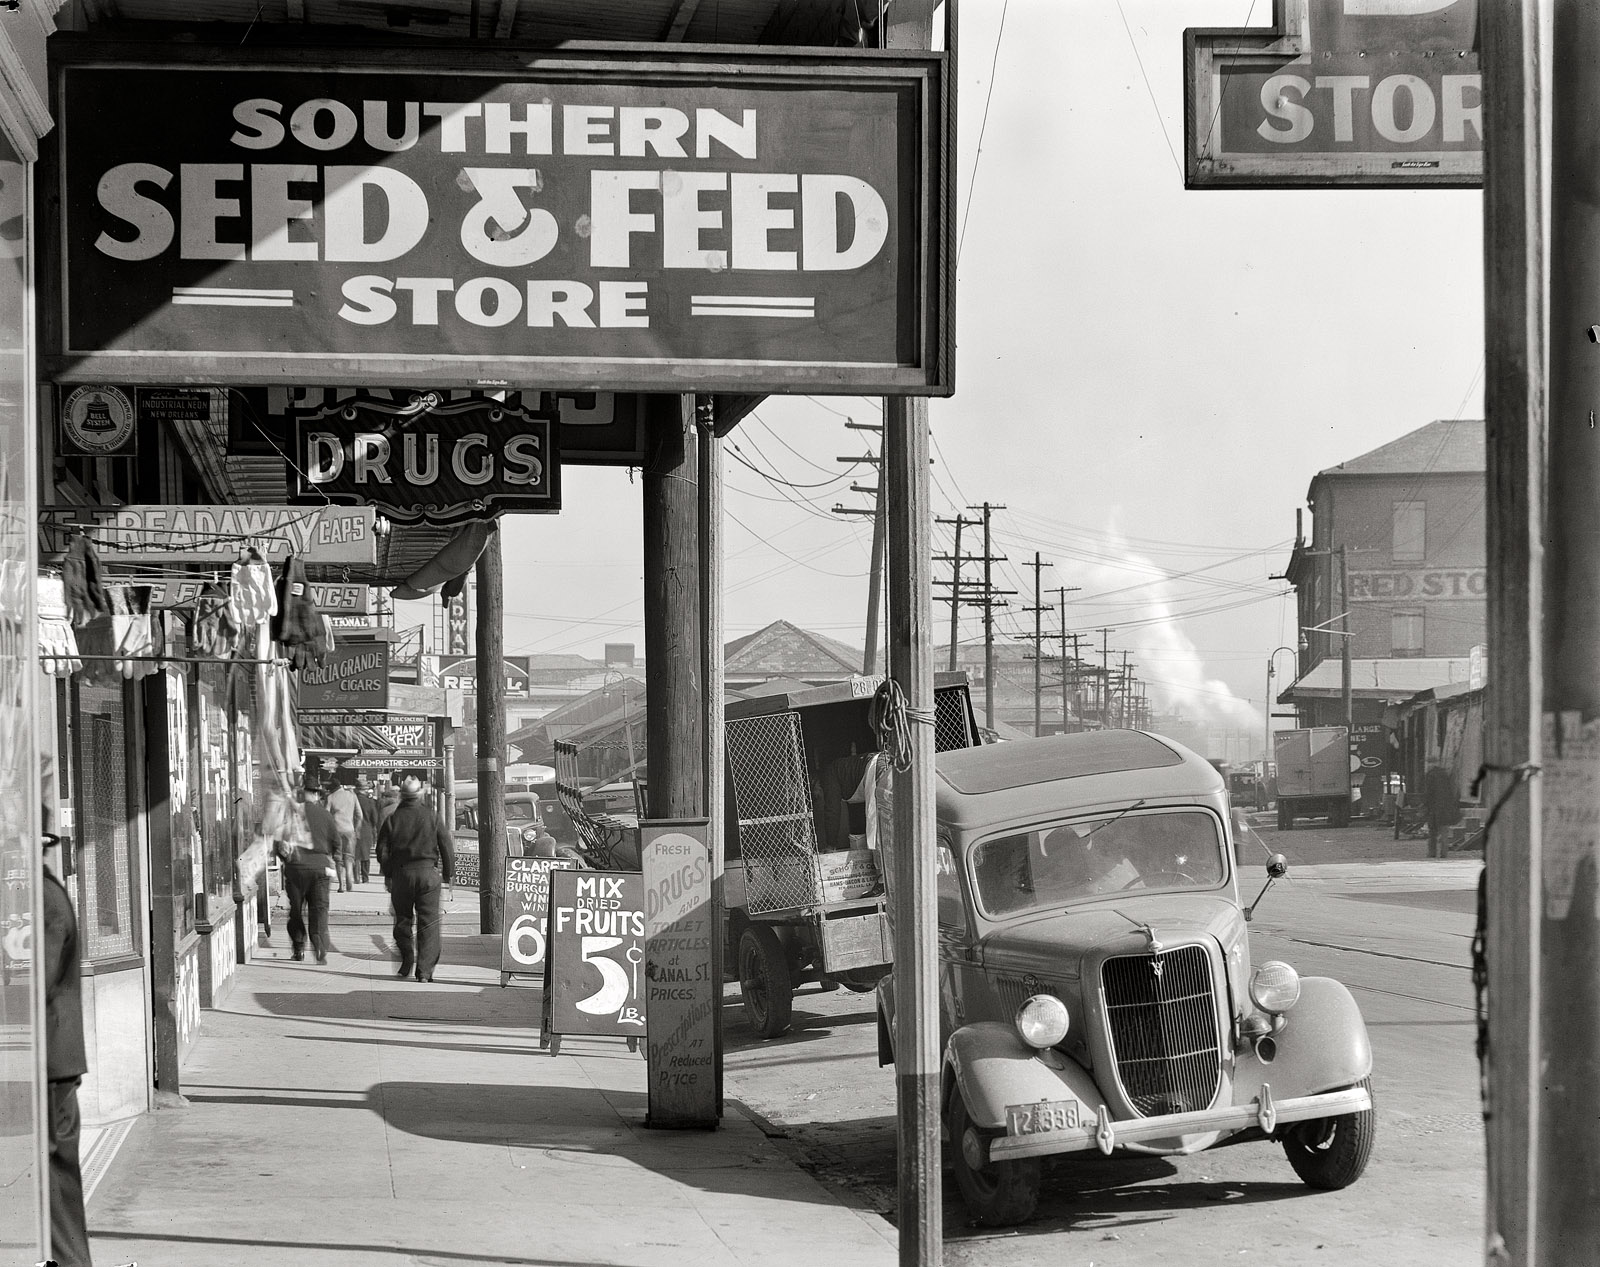 Southern+Seed+and+feed+Store